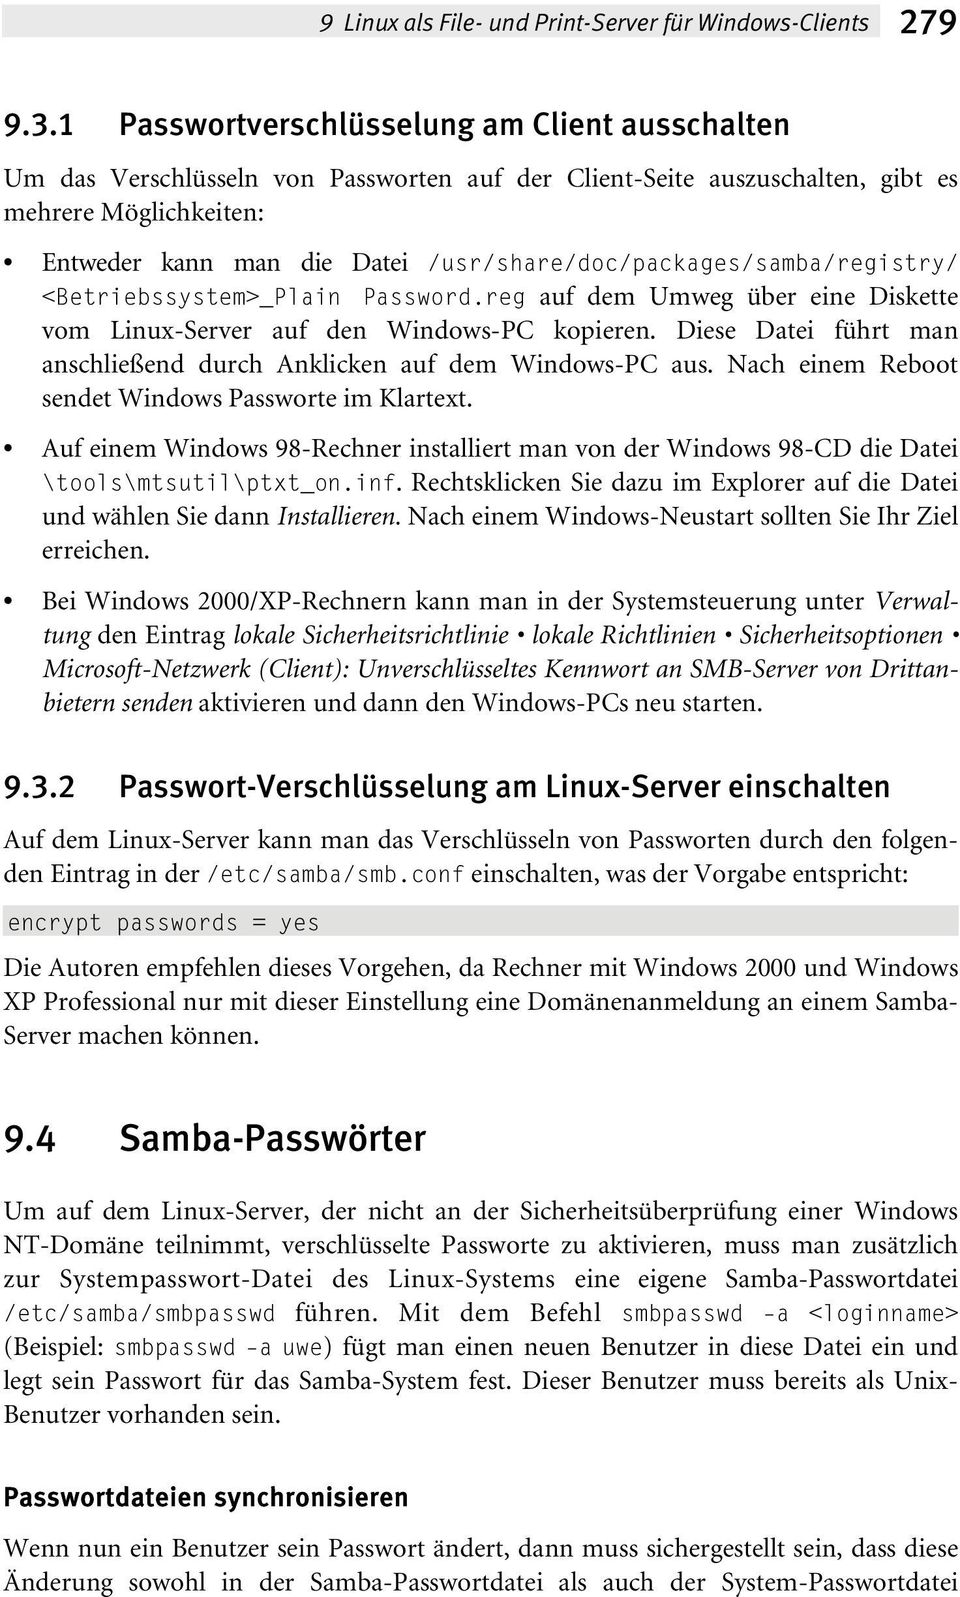 /usr/share/doc/packages/samba/registry/ <Betriebssystem>_Plain Password.reg auf dem Umweg über eine Diskette vom Linux-Server auf den Windows-PC kopieren.